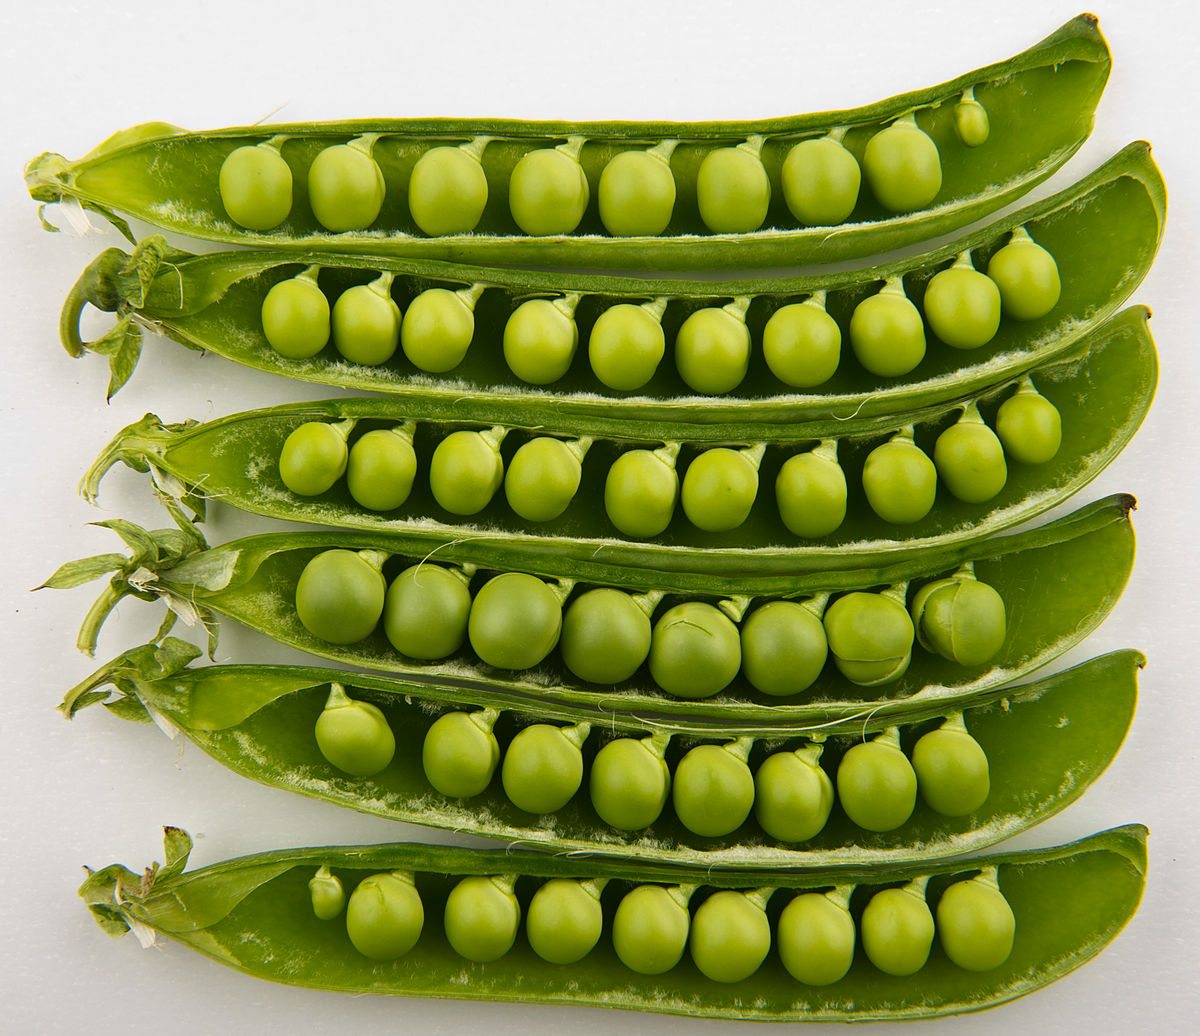 peas in shell